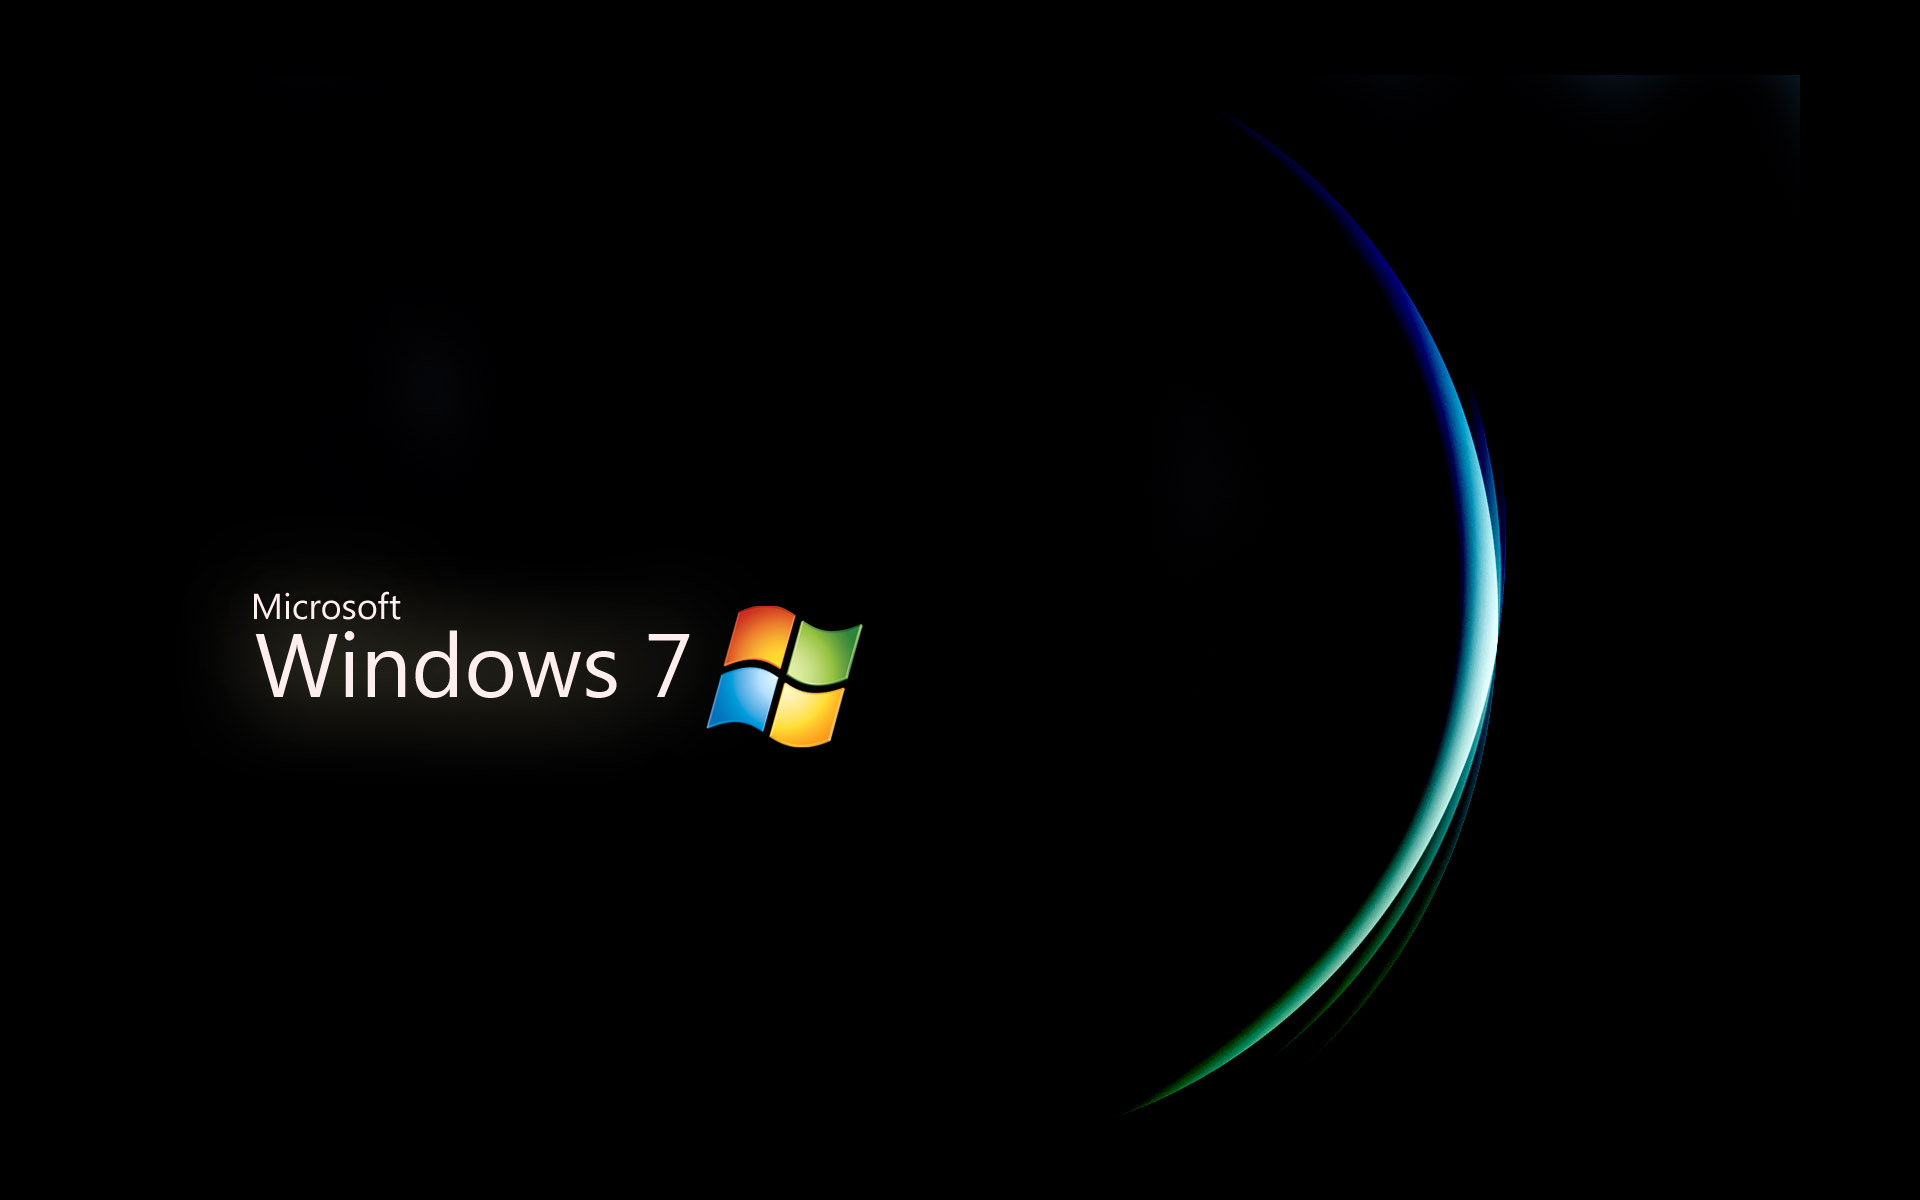 windows 7 full hd wallpaper and background image | 1920x1200 | id:87463